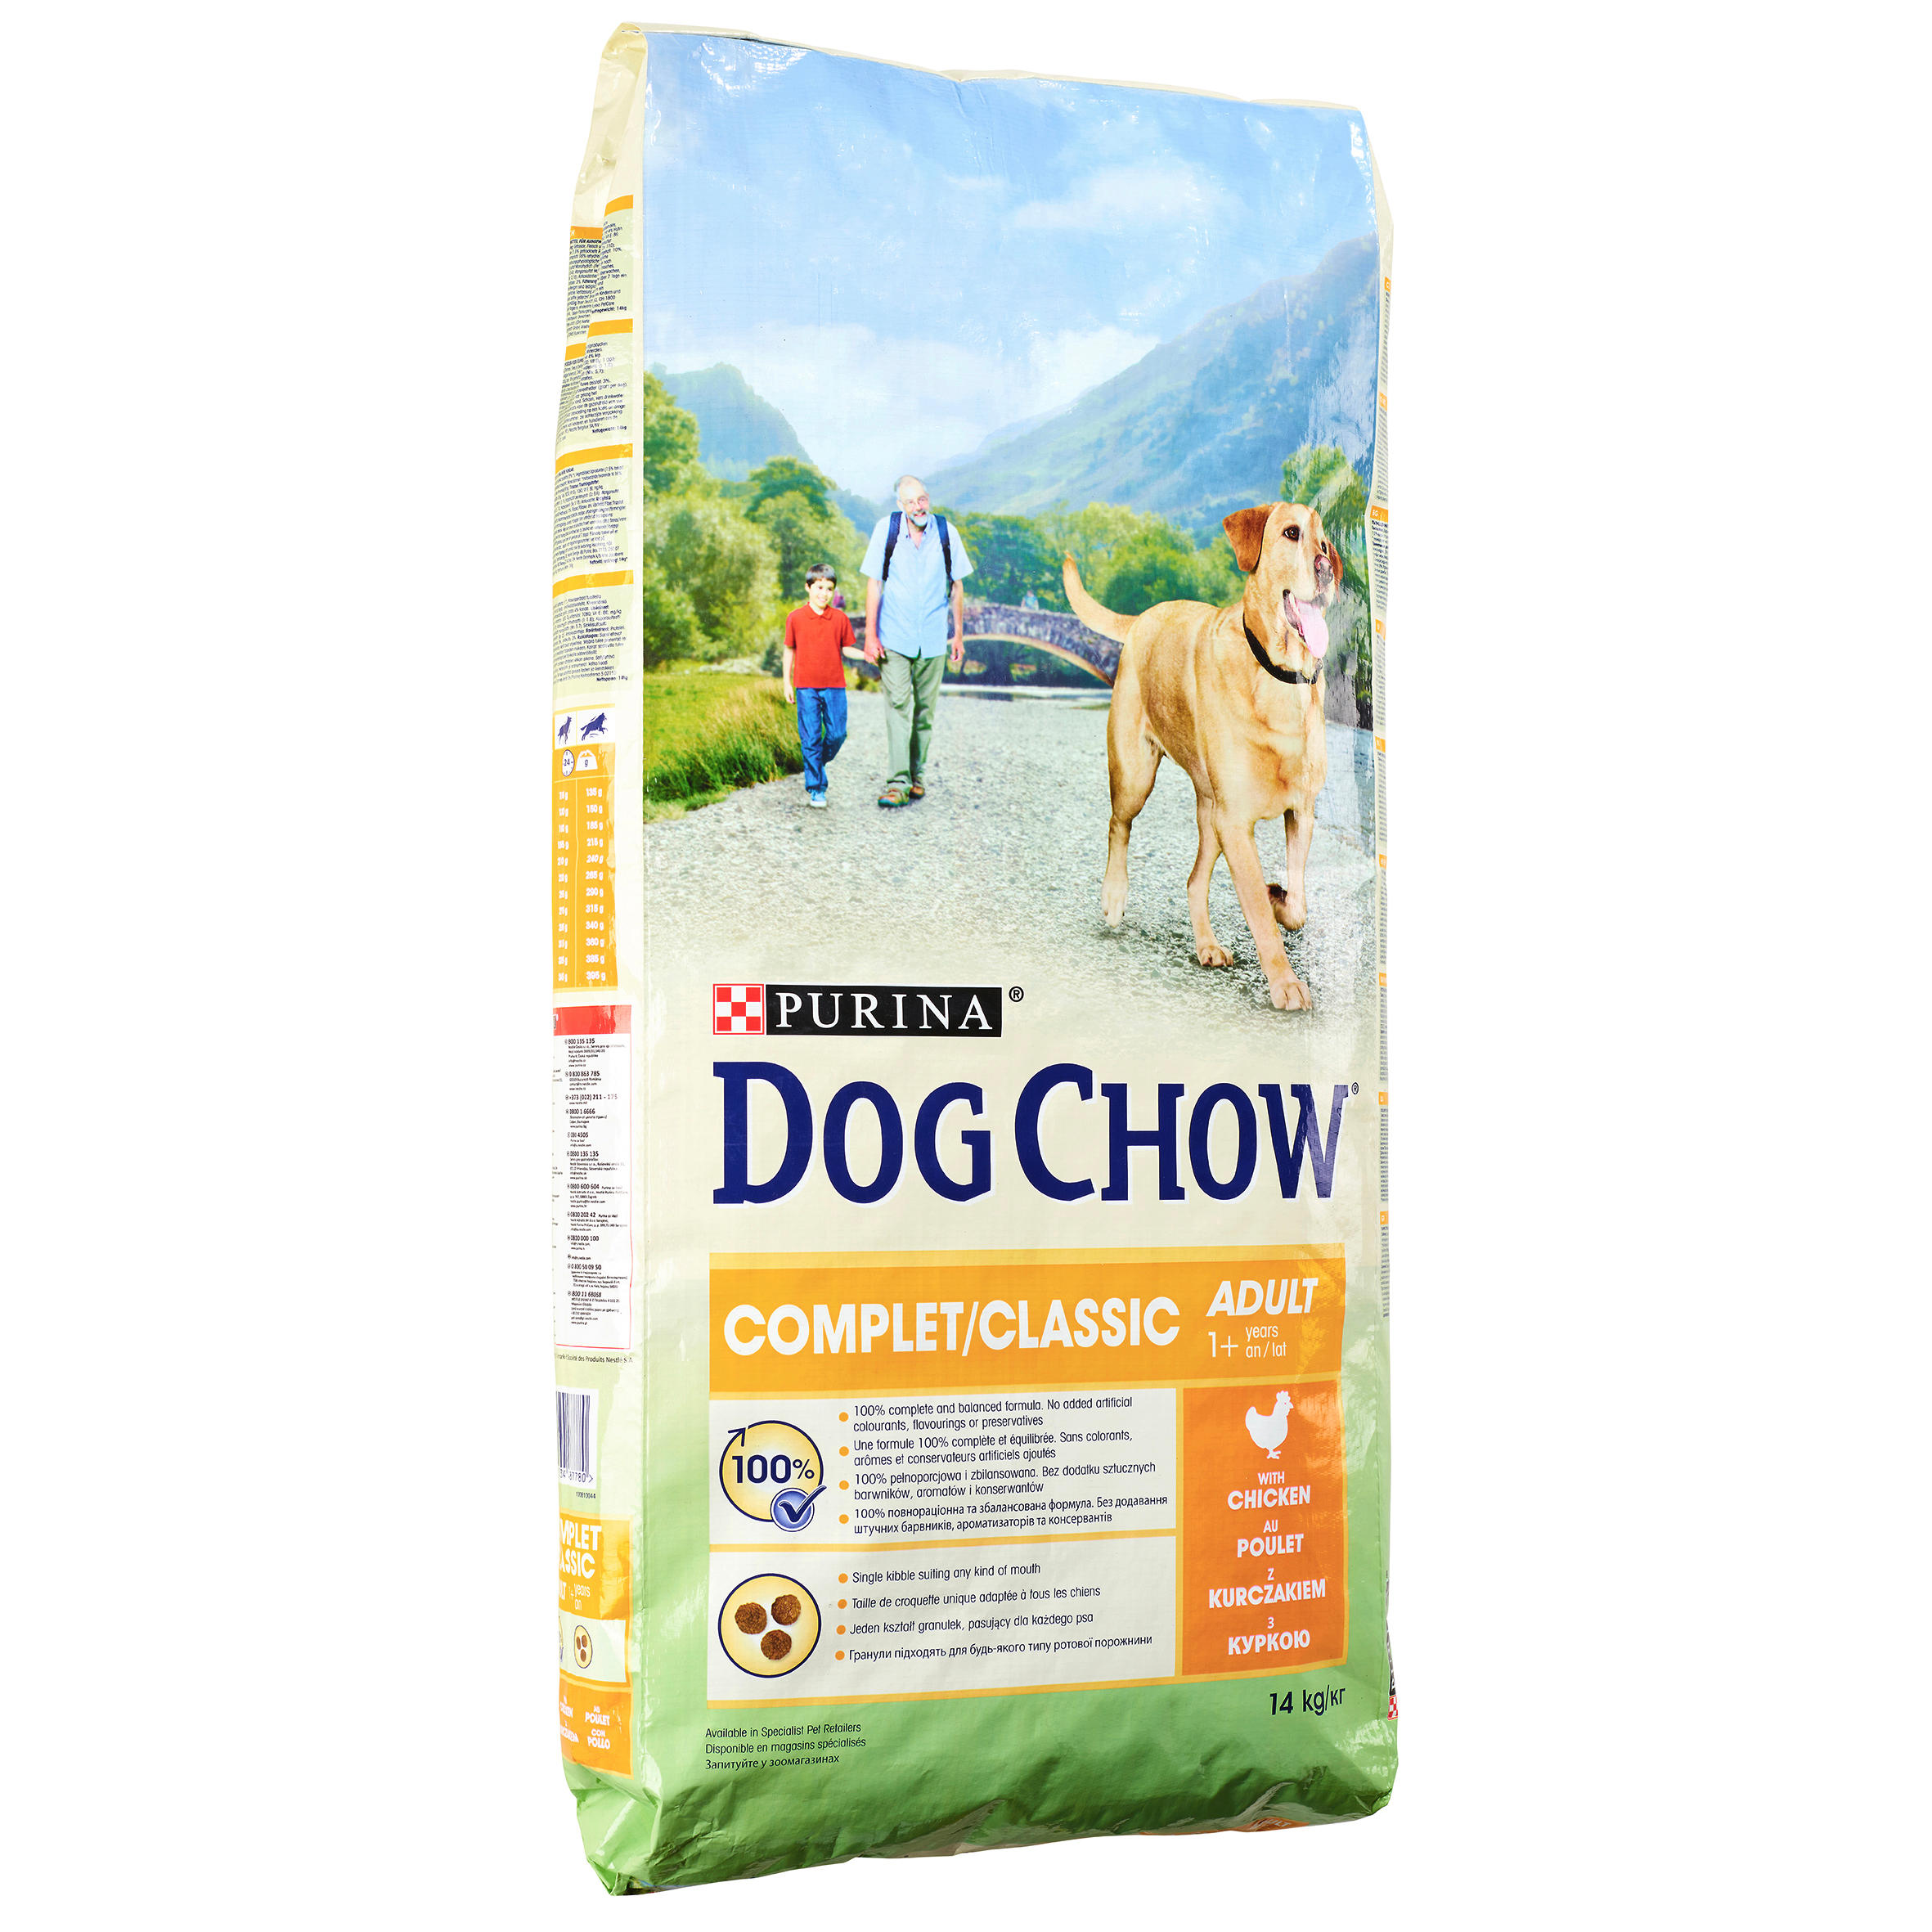 DOGCHOW COMPLET/CLASSIC PUI